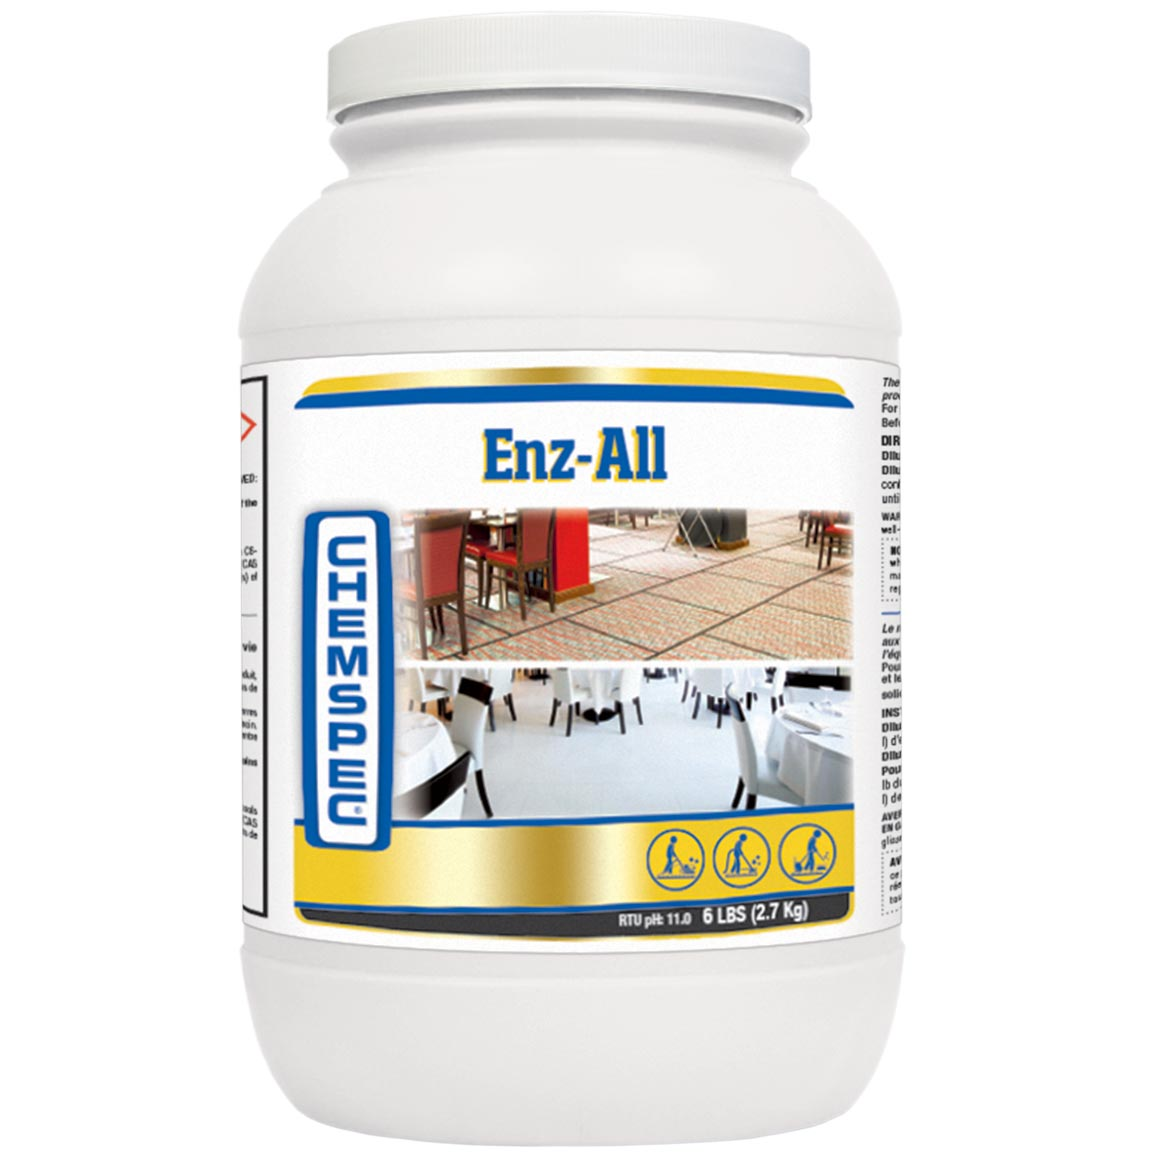 Chemspec C-EA24 Enz-All Powder Clean 6 lbs Jar Enzall Each C-EA6 091965013129